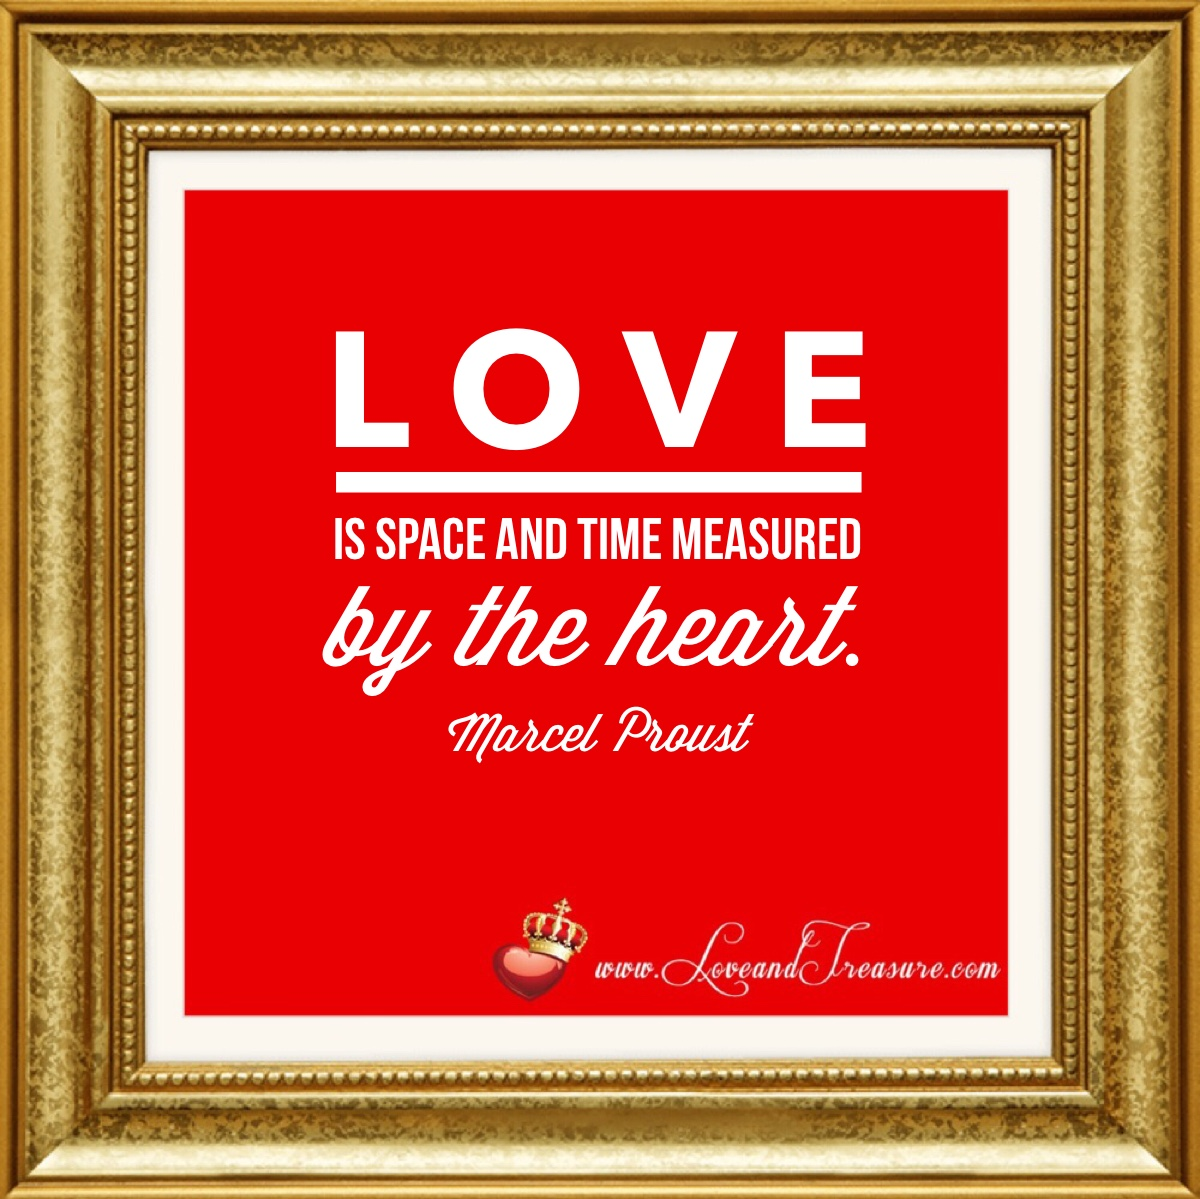 love is space and time measured by the heart, marcel proust, love and treasure, www.loveandtreasure.com